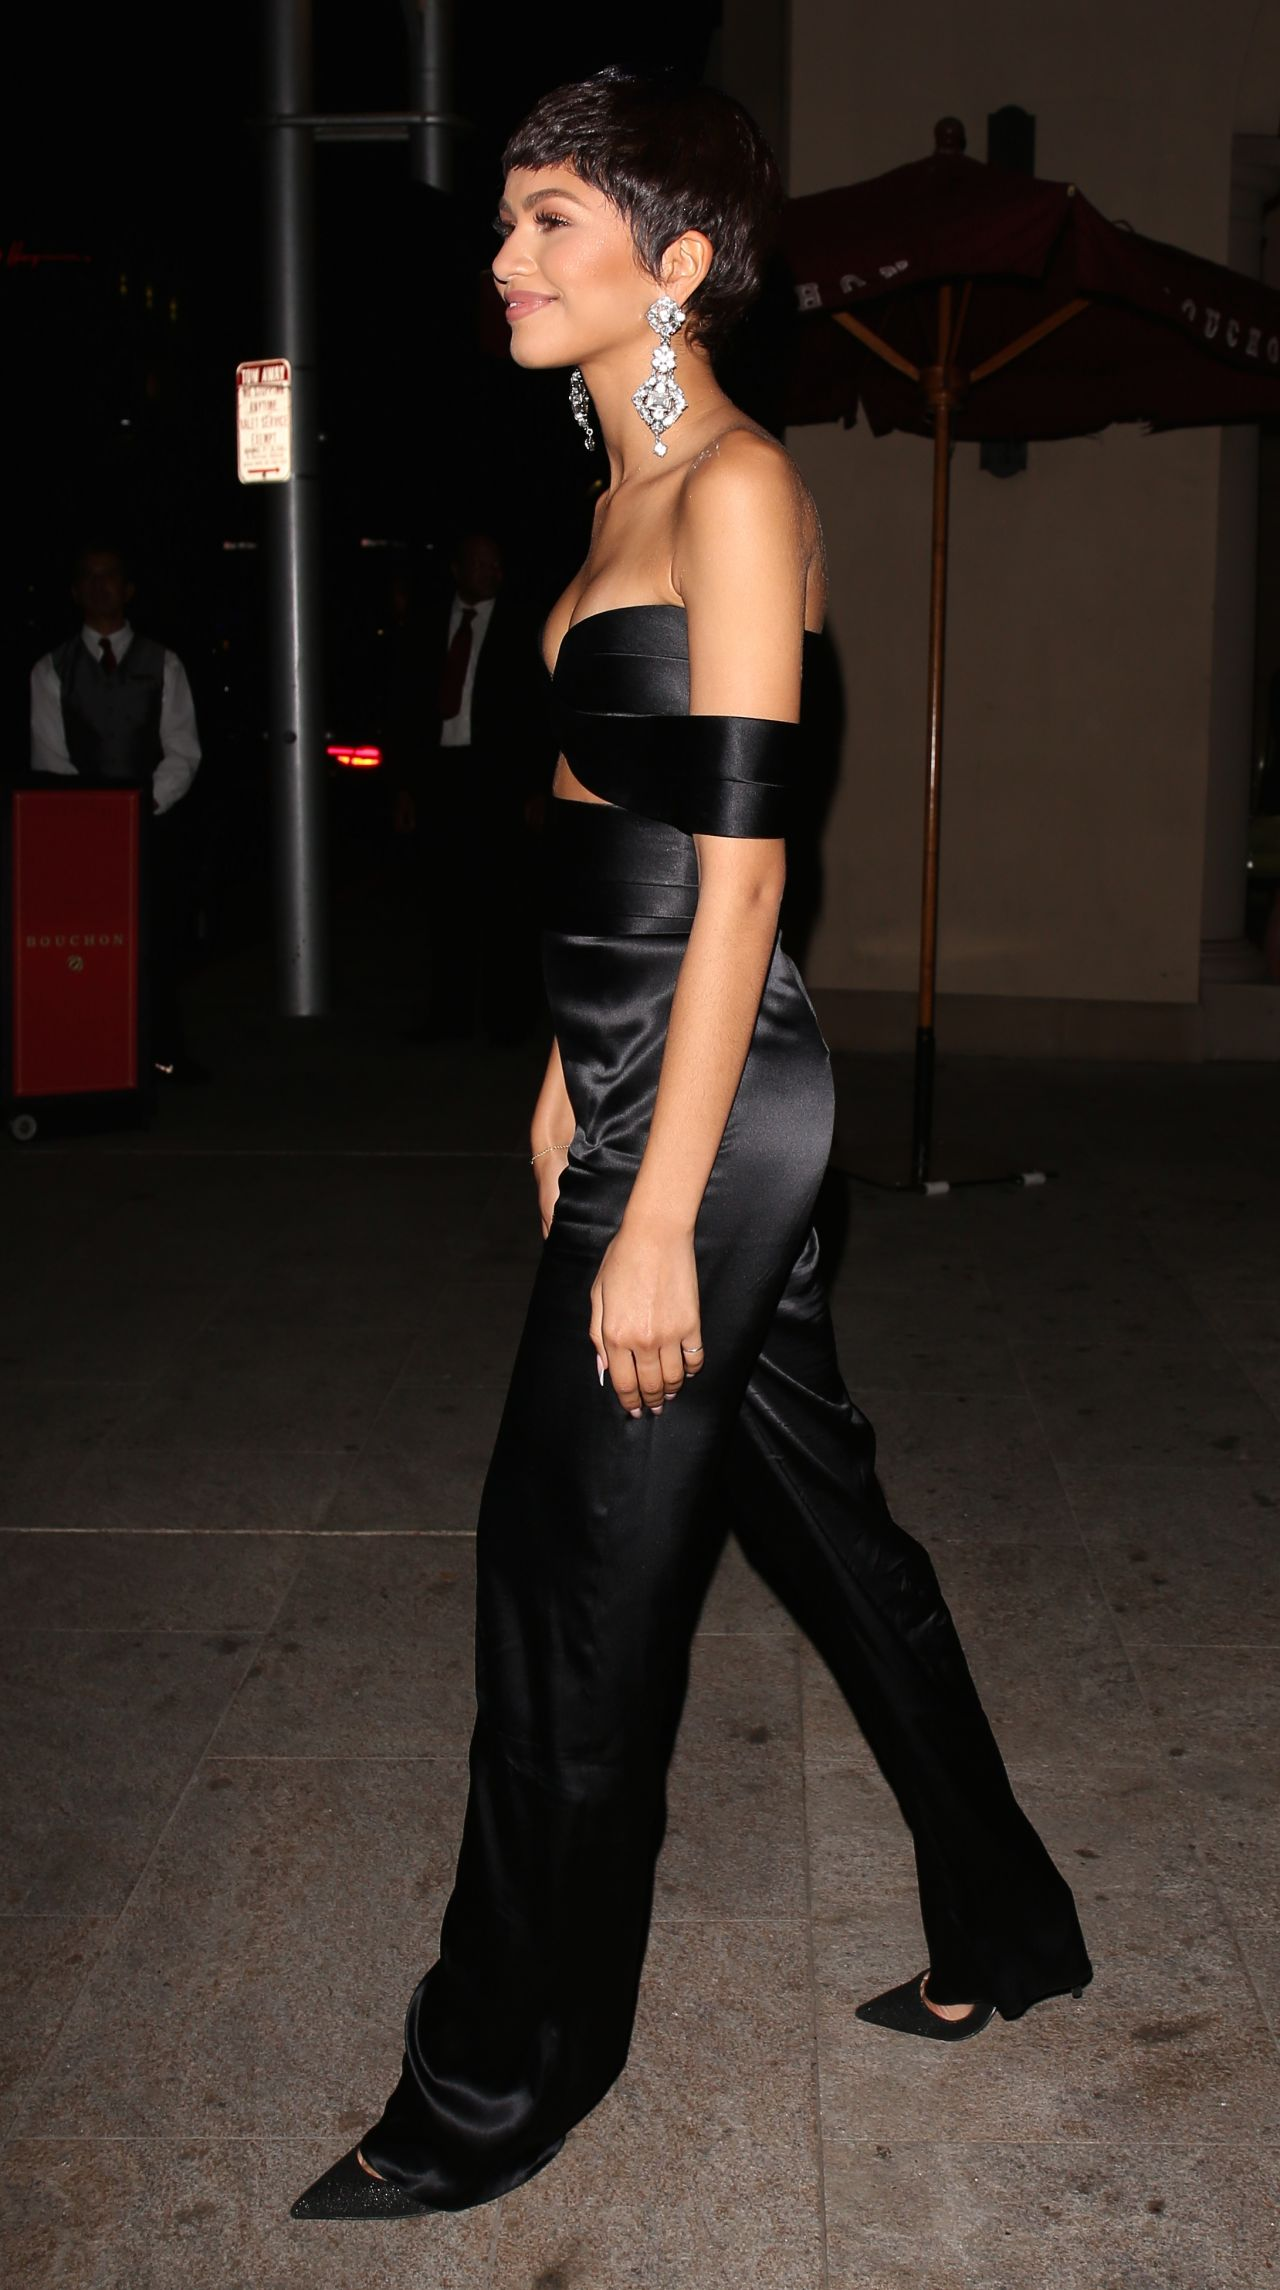 zendaya-at-the-chateau-marmont-in-west-hollywood-october-2015_5